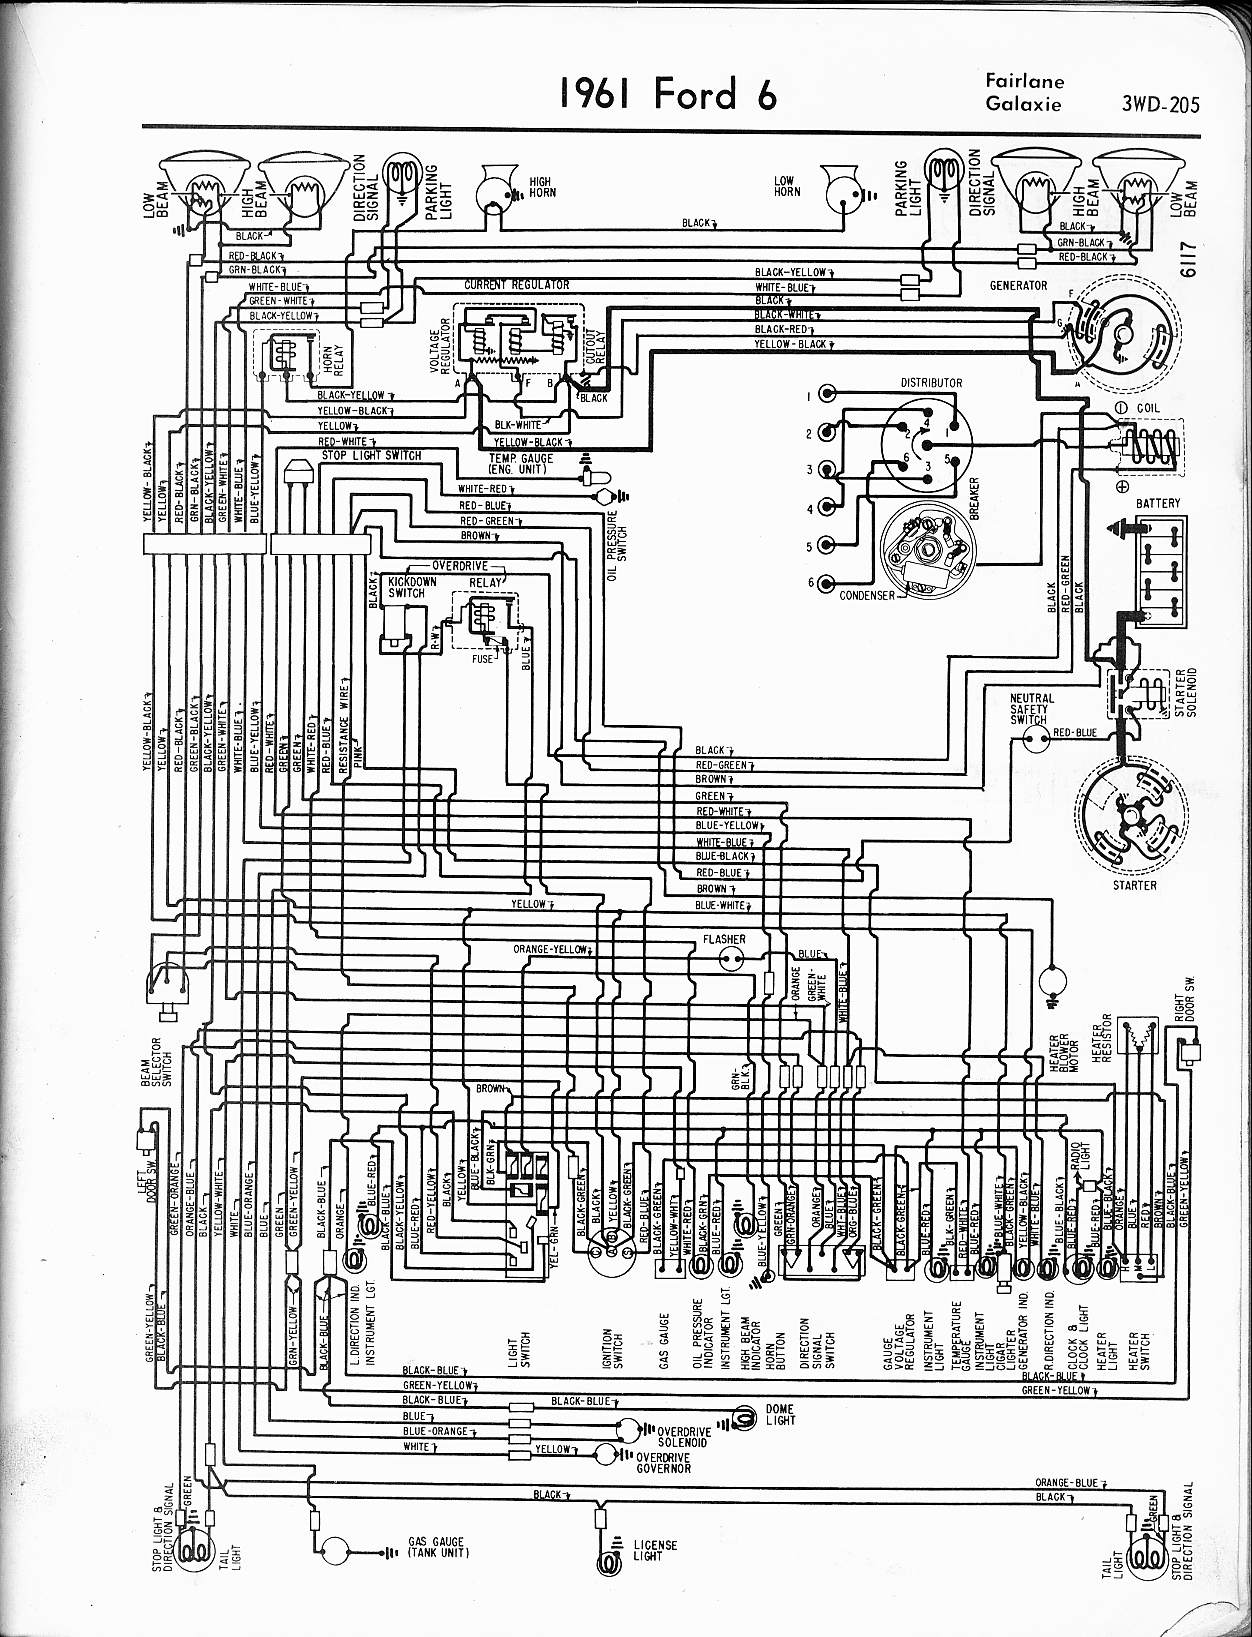 Wiring Diagram For 1961 Ford Falcon List Of Schematic Circuit Abanaki Oil Skimmer Ignition Auto Electrical Rh Endesigner Co